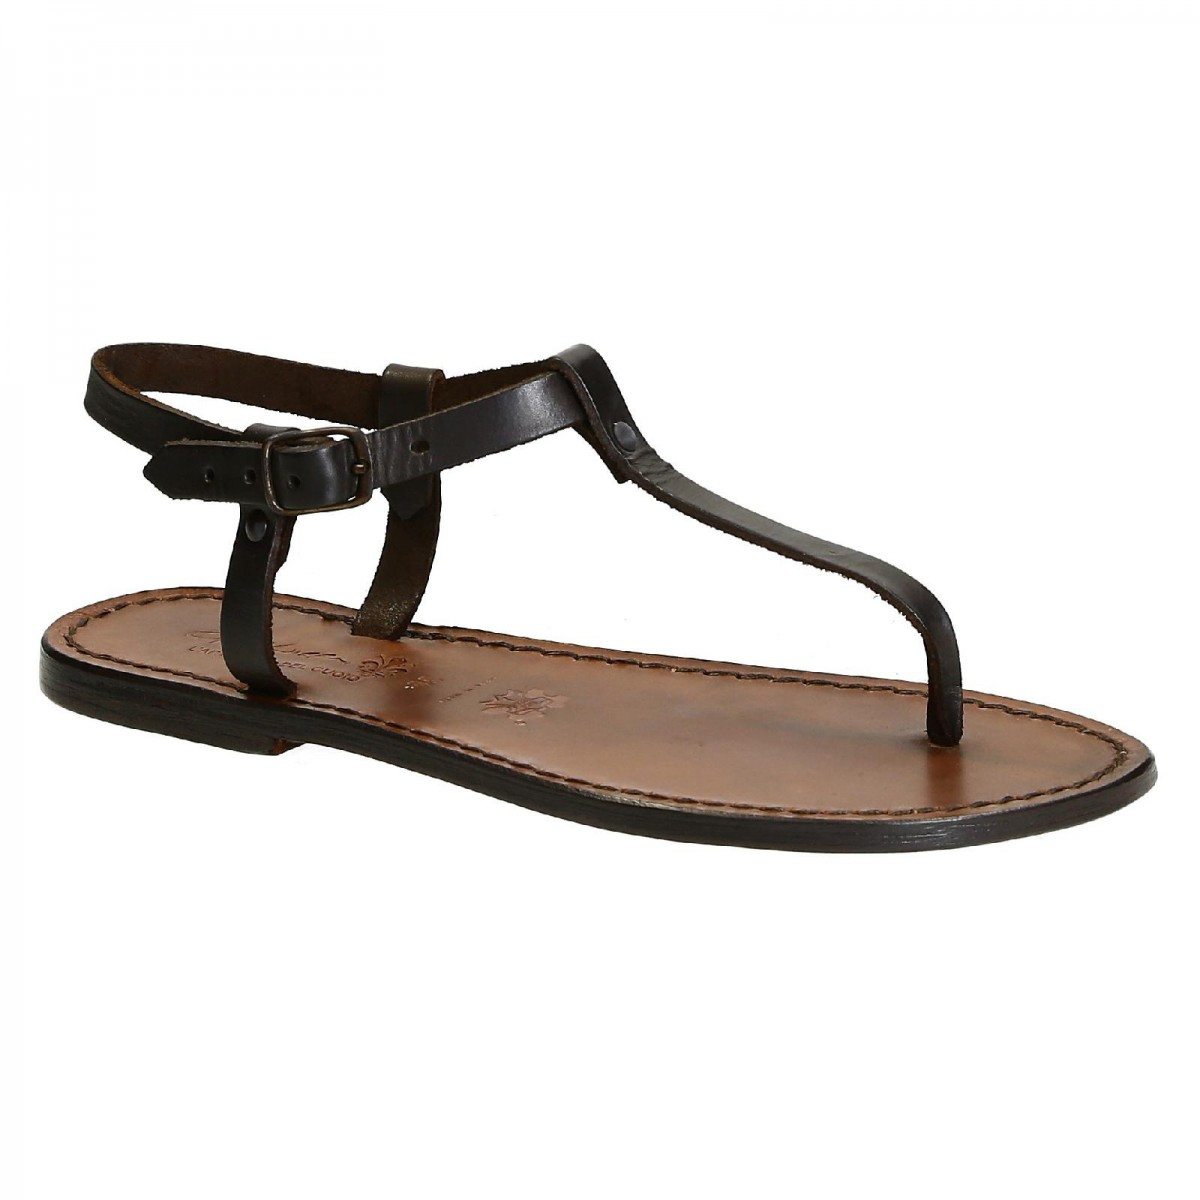 1db8fea795b Thong sandals in Dark Brown Leather handmade in Italy. Loading zoom